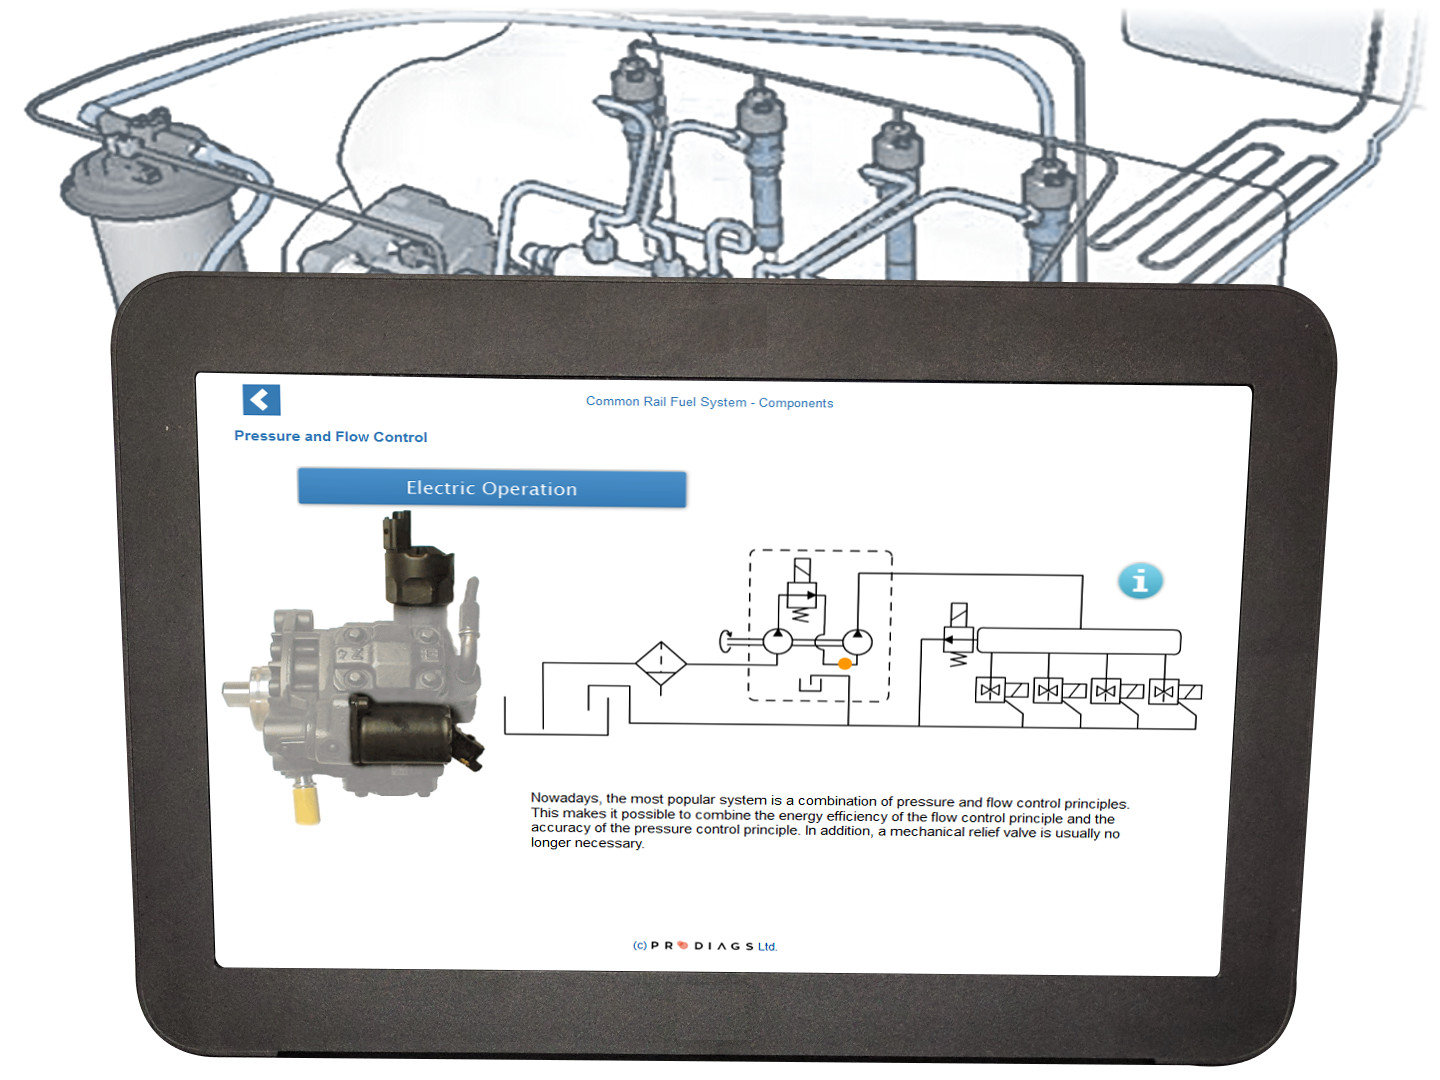 Learn how common rail pressure control works. What is the function of the common rail high pressure pump, and how does common rail pressure adjusting work in practice? Learn this and much more with this online training module.